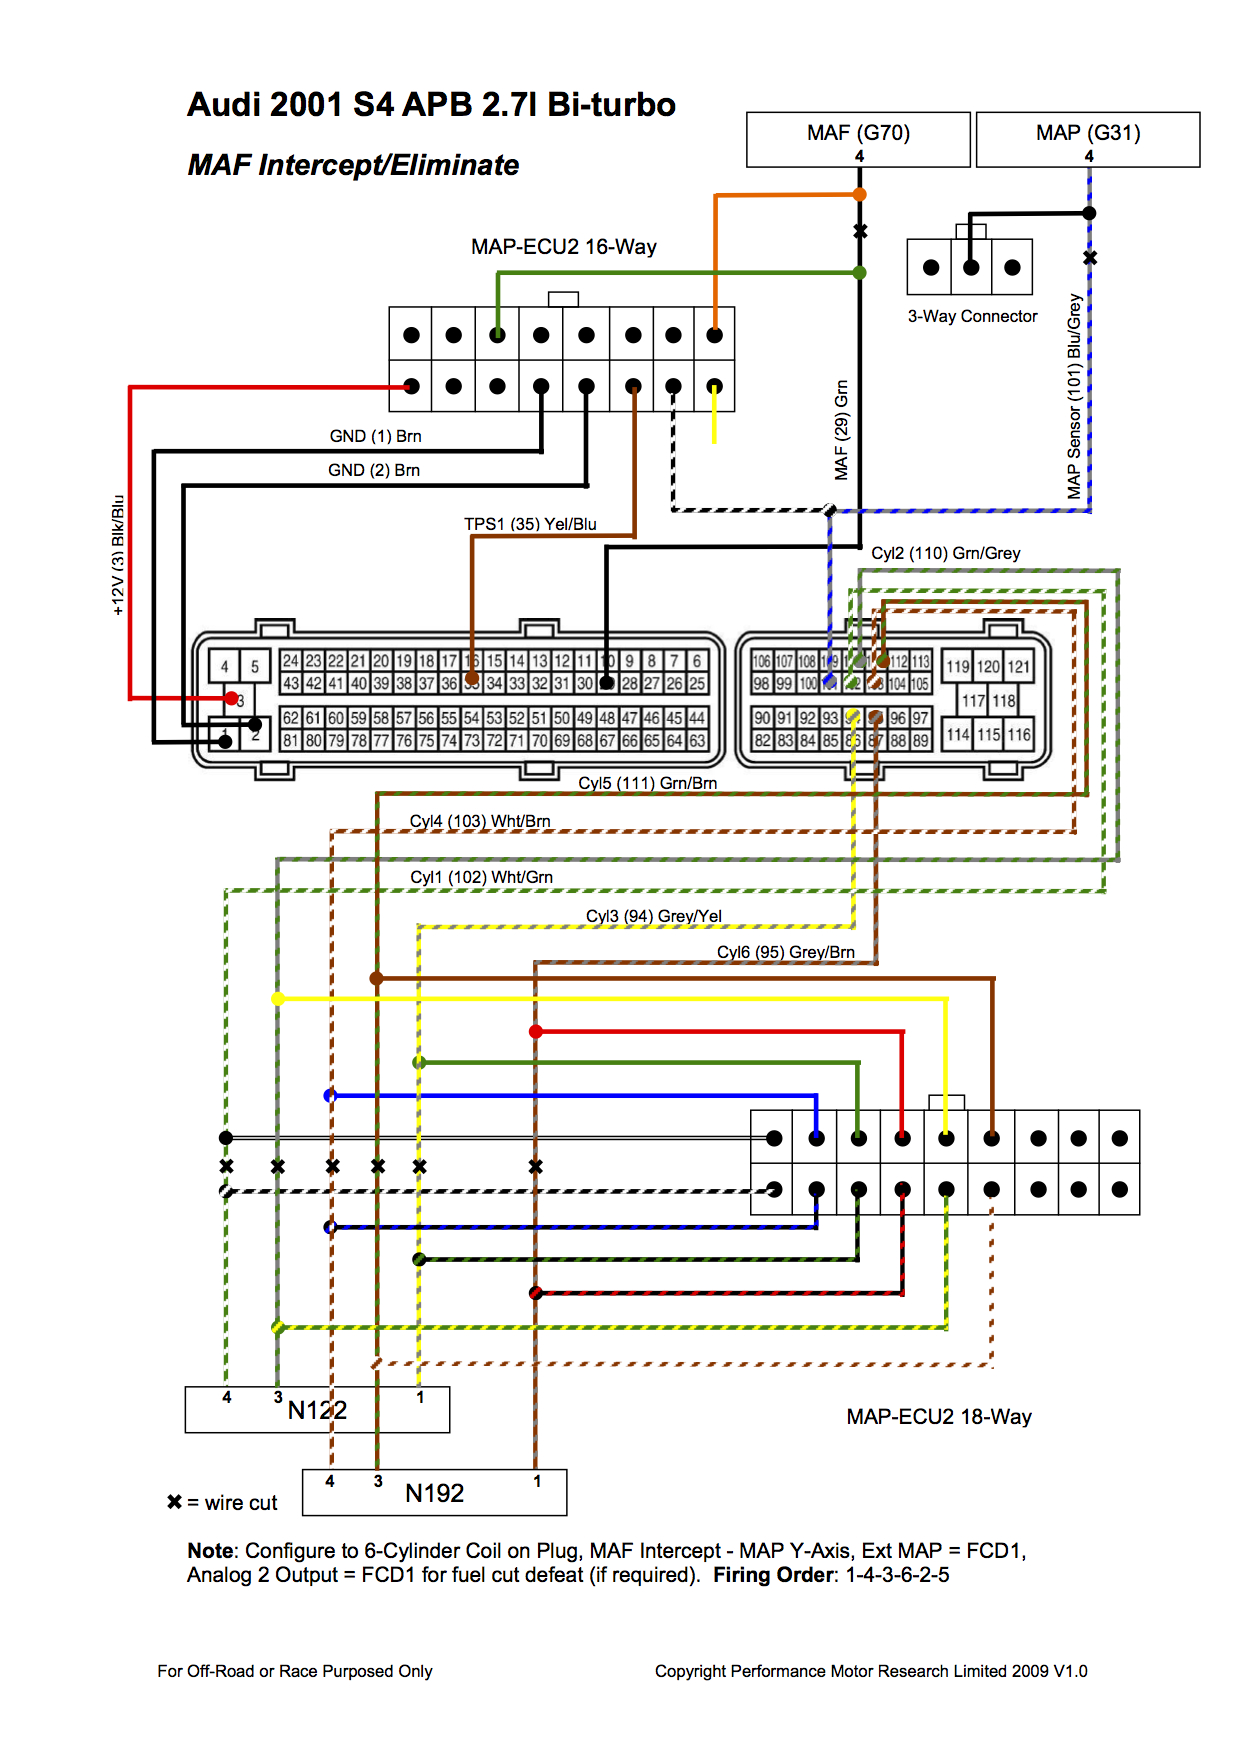 Audi S4 20011 300zx wiring diagram 300zx engine wiring diagram \u2022 wiring diagrams 95 nissan pickup wiring diagram at alyssarenee.co